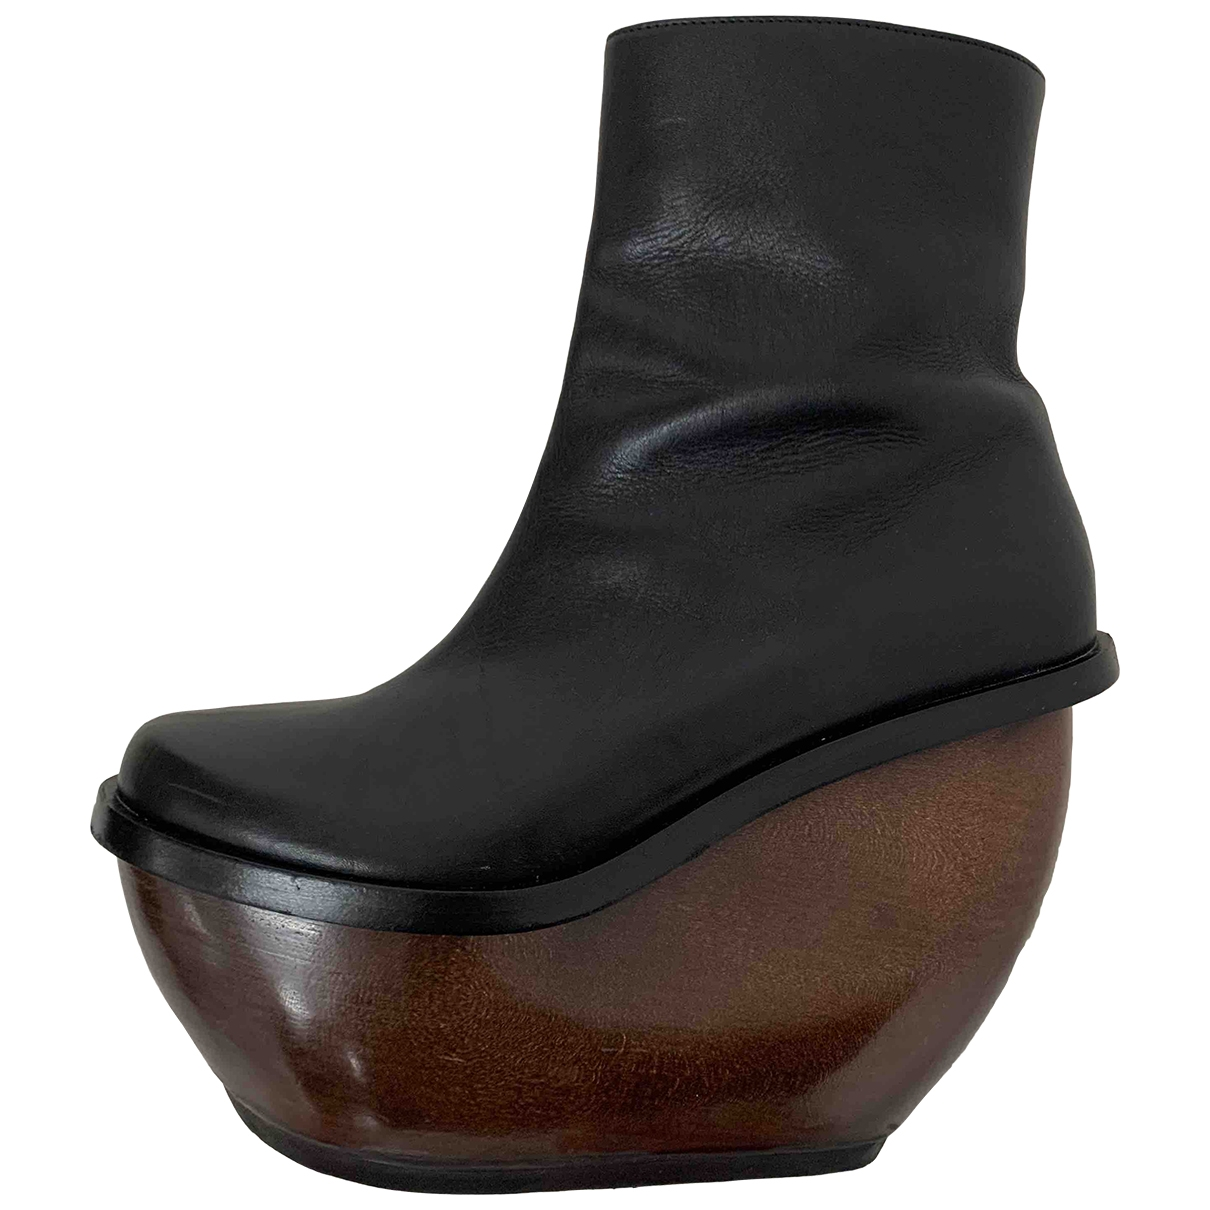 & Stories \N Black Leather Boots for Women 39 EU